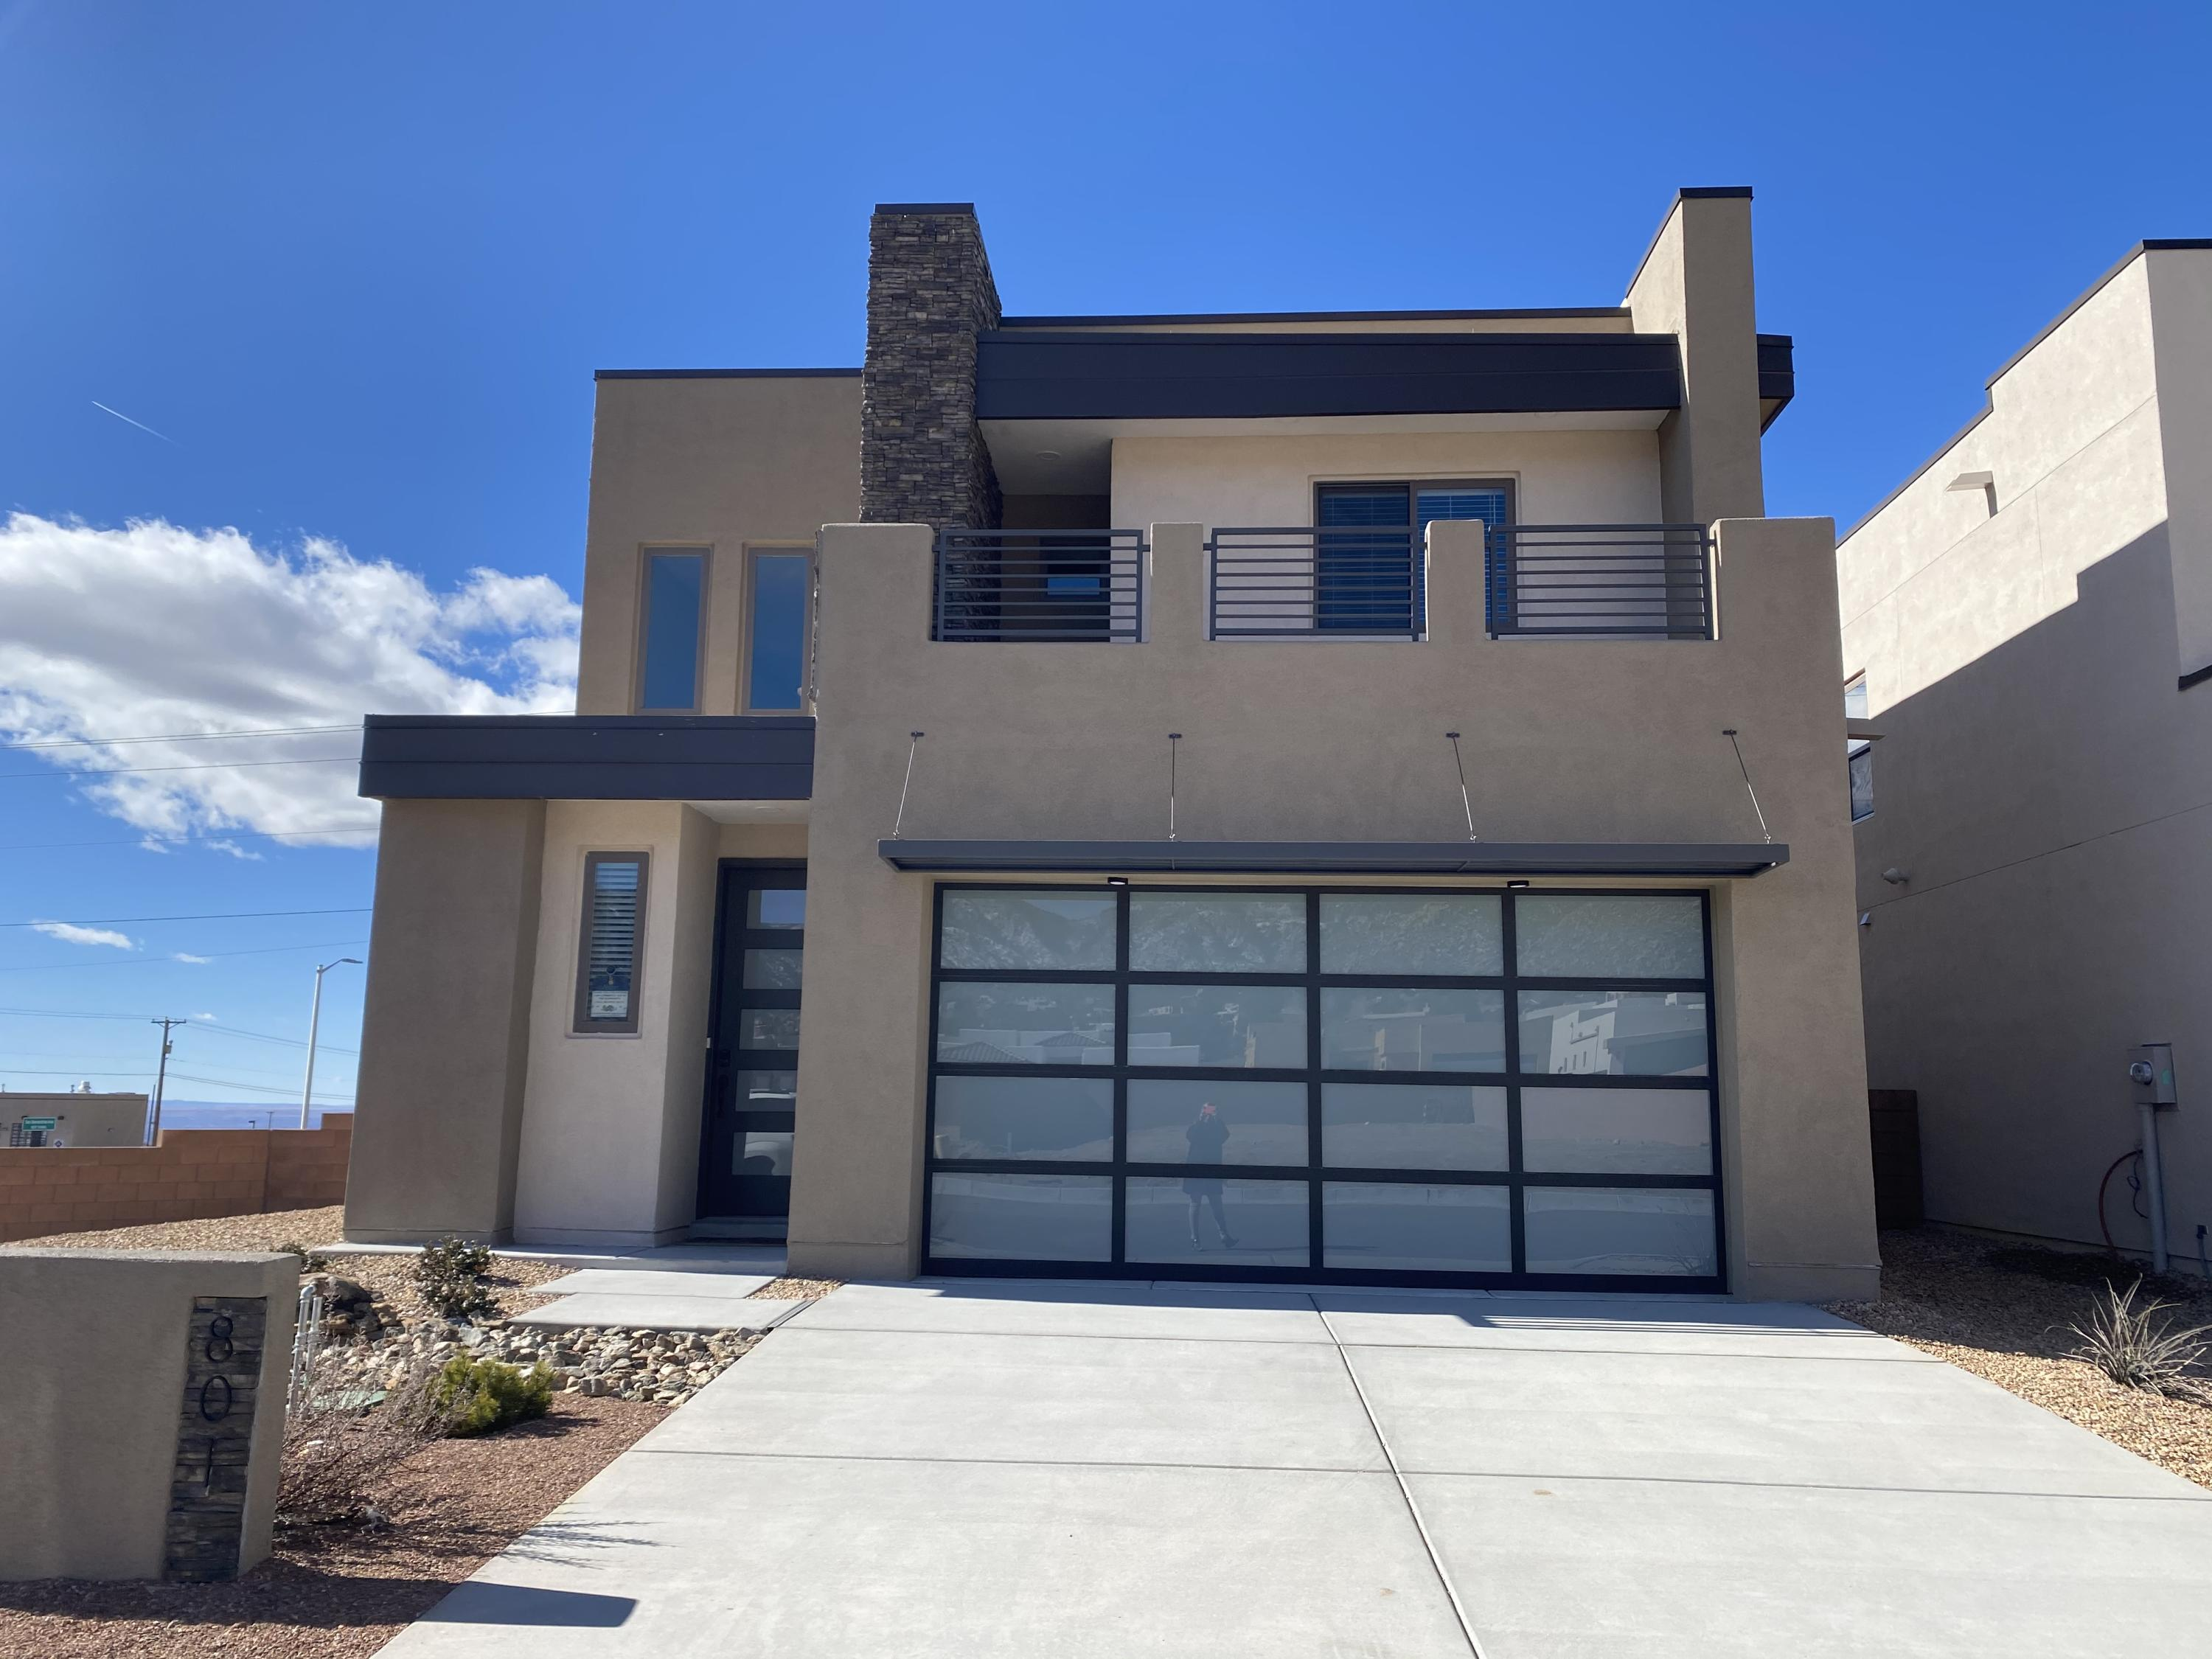 Open the doors to this beautiful home and discover a brand new Abrazo community in Northeast Albuquerque. Hawks Landing is the first to see some of Abrazo's newest floor plans and contemporary designs. This home not only has some of the best views, but also the first Cabo in Hawks Landing. This Cabo is a two-story, has 4 bedrooms, 3.5 baths, and 2,700 SQ FT. This beautiful Cabo has been designed by Abrazo's in-house designer, with elements that infuse warm colors in order to make this home modern. All of these features together, create an dazzling, modern feel! This home's balcony comes with  views of the Sandias, pairing perfectly with your morning coffee!